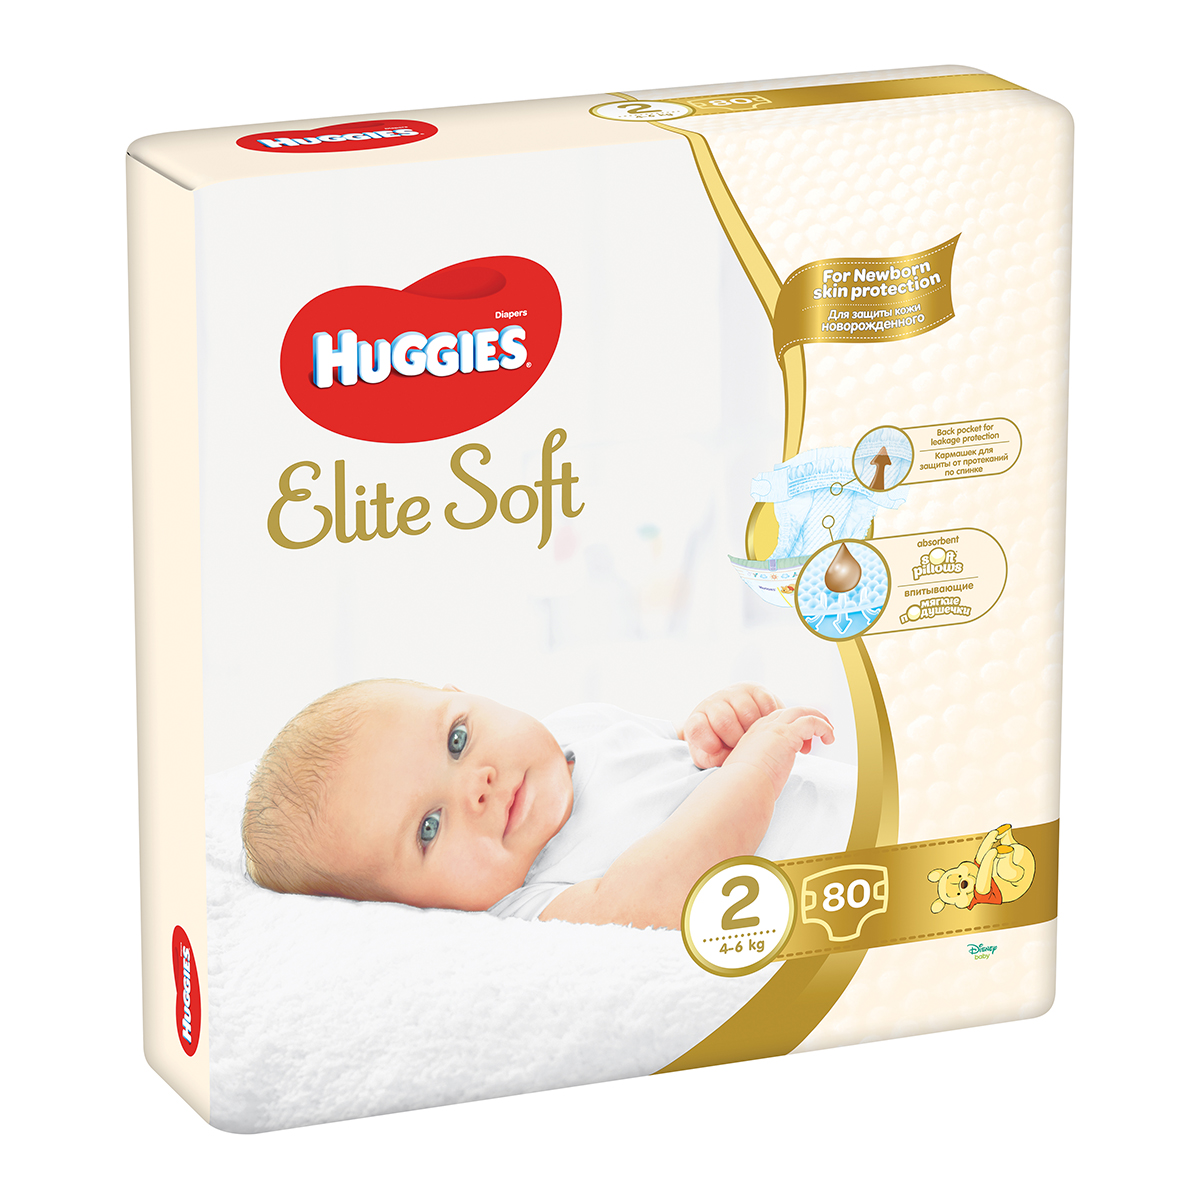 Scutece Huggies Elite Soft, Nr 2, 4 - 6 Kg, 80 buc